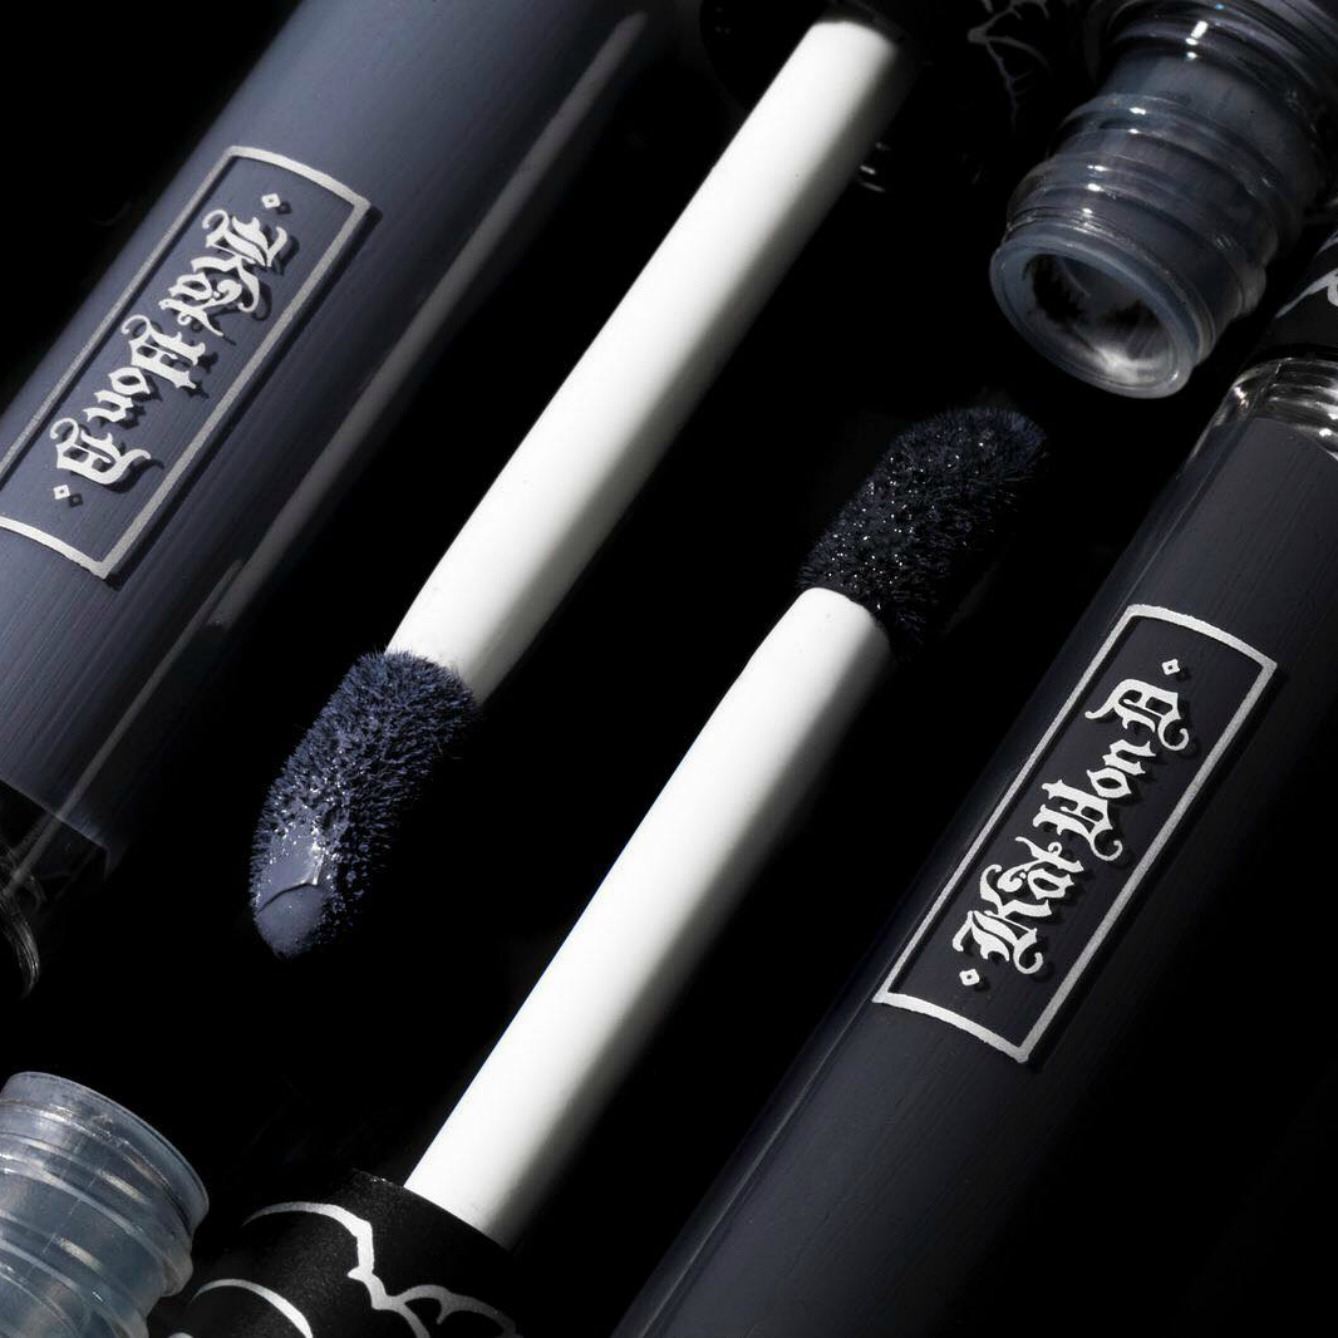 Kat Von D Heard Our Cries for Dark Lipstick